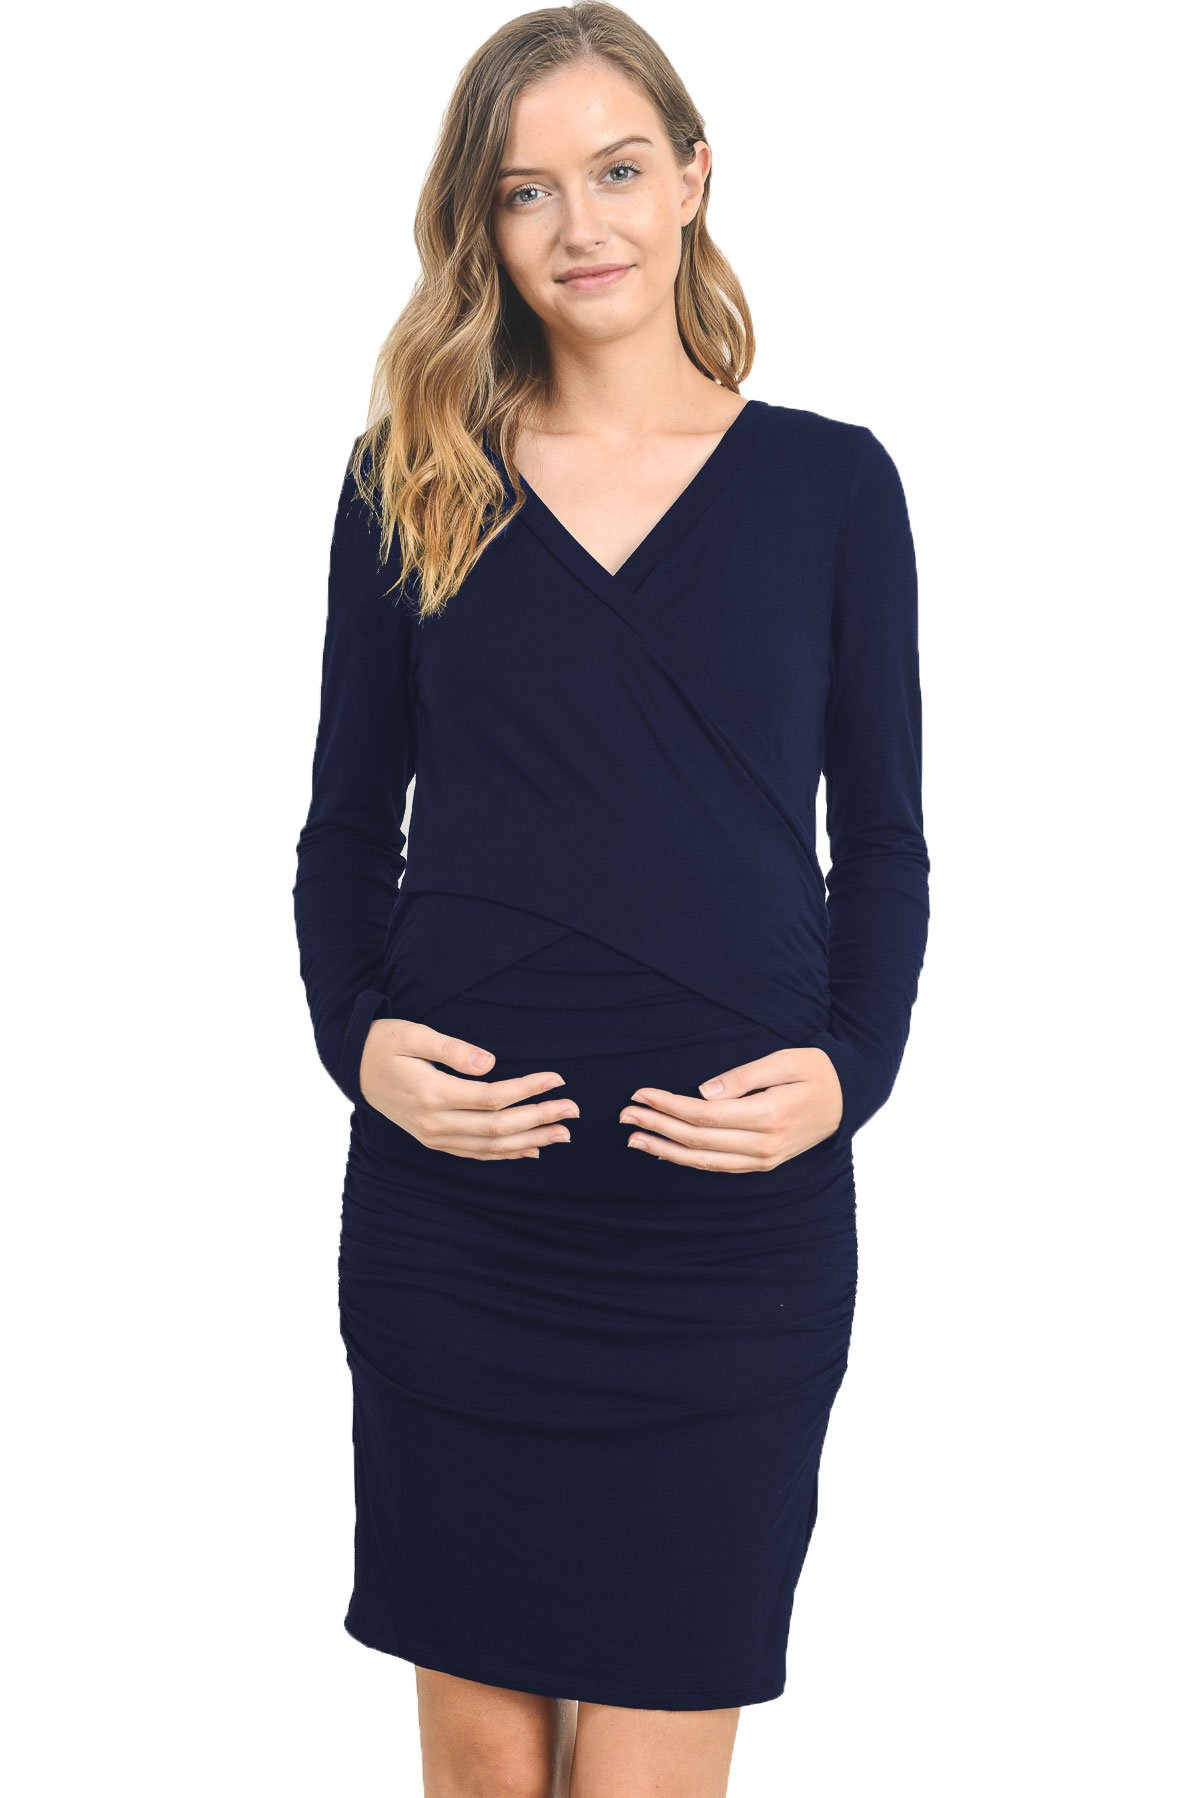 Hello Miz Women's Cross Over V-Neck Long Sleeve Fitted Maternity Nursing Dress (Navy,Large)